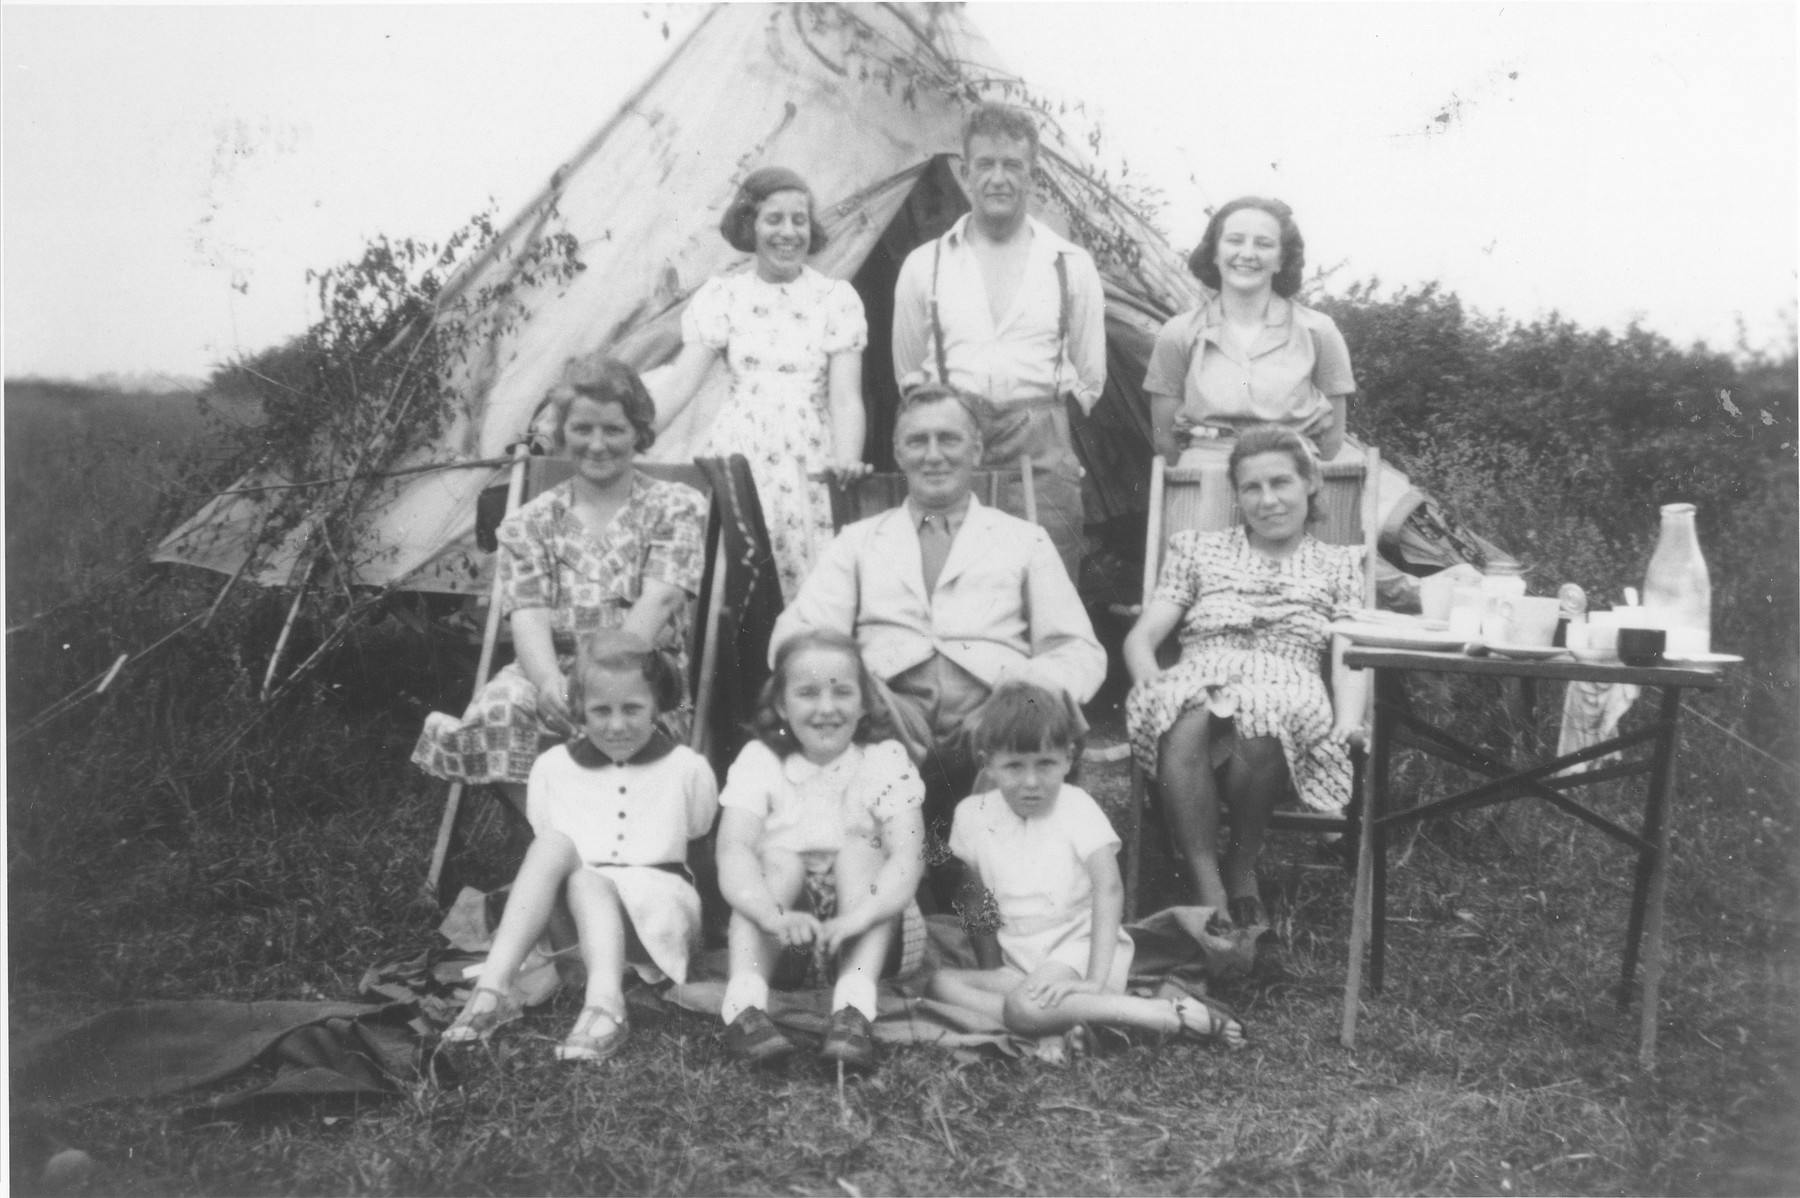 Eva Rosenbaum (back left) goes camping with her foster family in England.